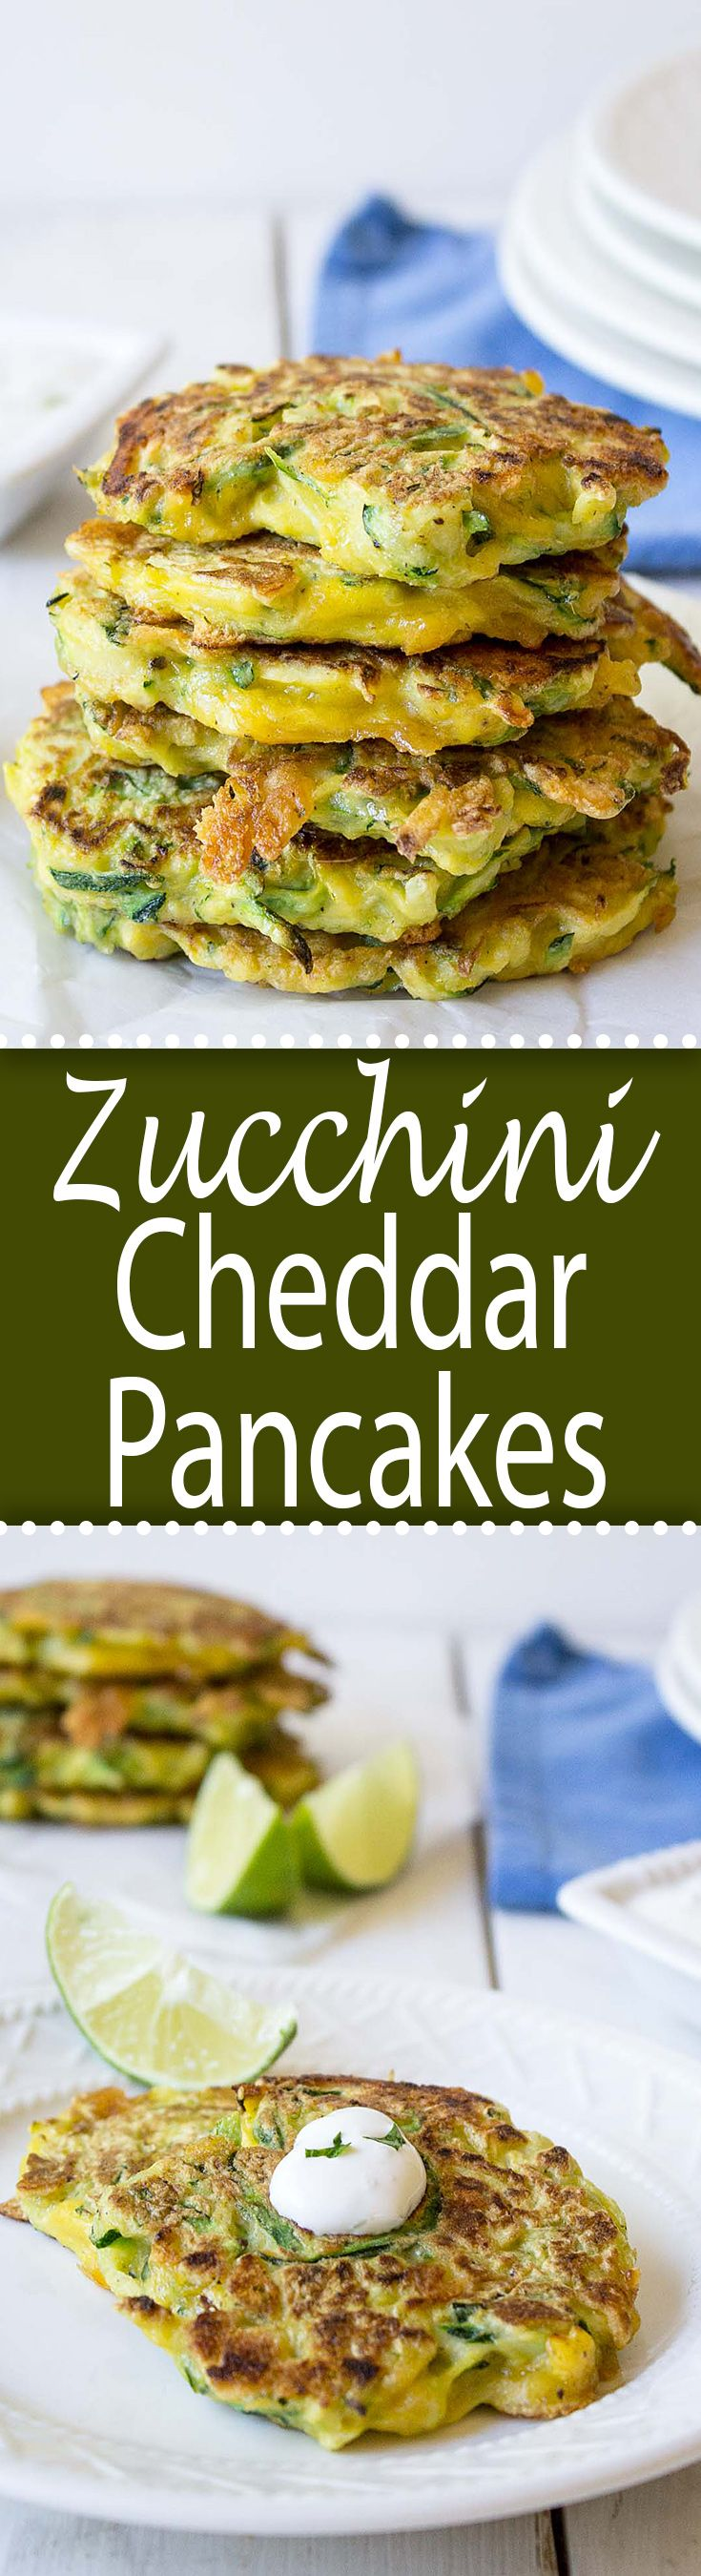 Zucchini Cheddar Pancakes beyondthechickencoop.com